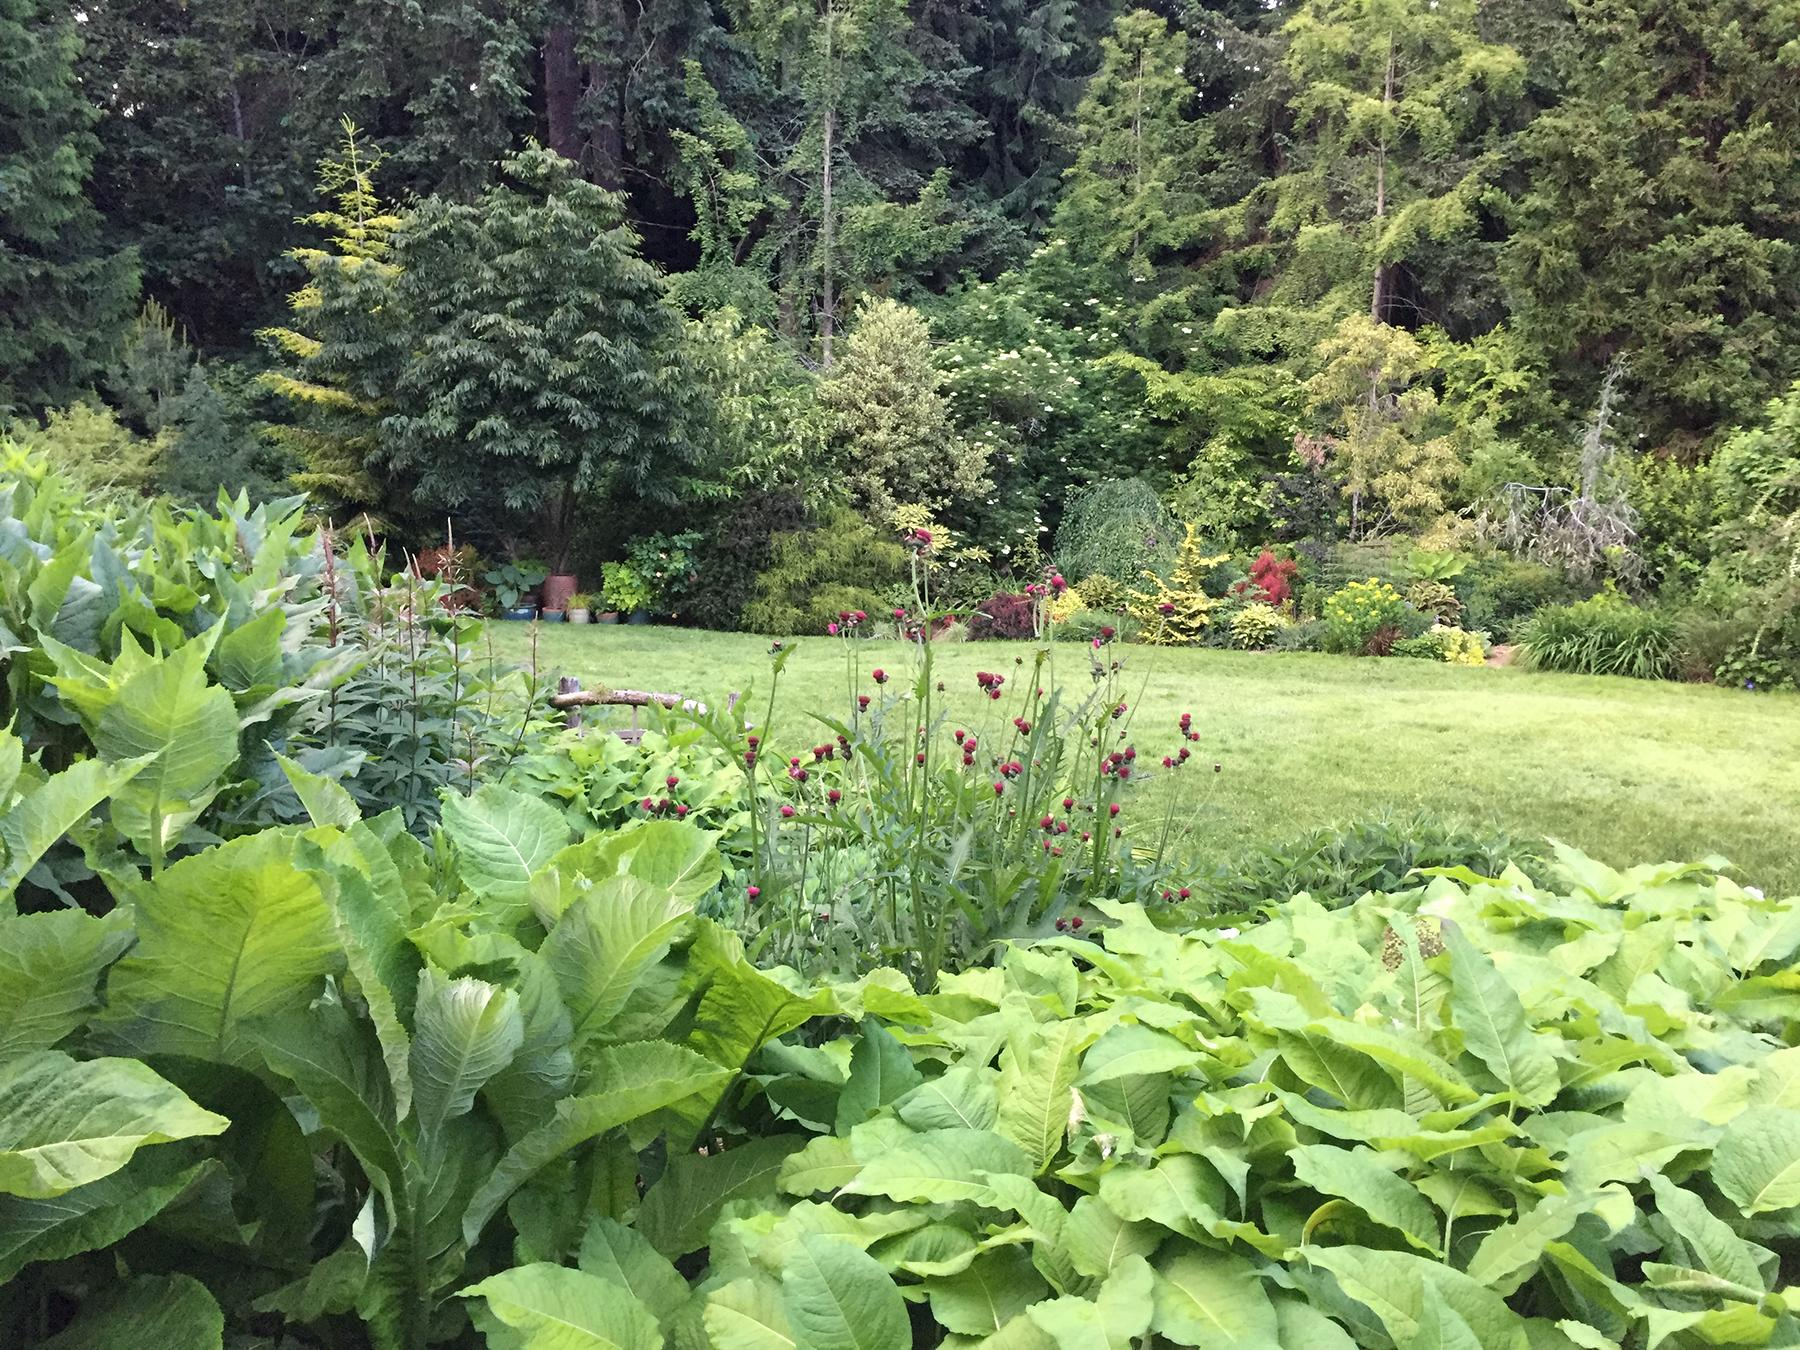 "On Saturday, June 22, you are cordially invited to five private gardens in Bainbridge Island, through the Garden Conservancy Open Days program, 10 a.m. to 4 p.m. The Open Day is rain or shine, and no reservations are required. Admission is $10 per garden; children 12 and under are free. 9786 NE Yaquina Avenue. This two-acre garden has been developed over 25 years. It has quiet green areas, exuberant mixed borders stuffed with unusual plants, a boxwood parterre with a pebble mosaic floor, and an old orchard. The greenhouse was constructed of vintage windows and wood, surrounded by succulents that spend the summer outside. There are outbuildings filled with collectibles, including a ""tiki hut."" The raised vegetable beds have been converted to a cutting garden in a color wheel, with a fountain in the center constructed from old grain augers. (Image courtesy of Stephanie Werskey)."